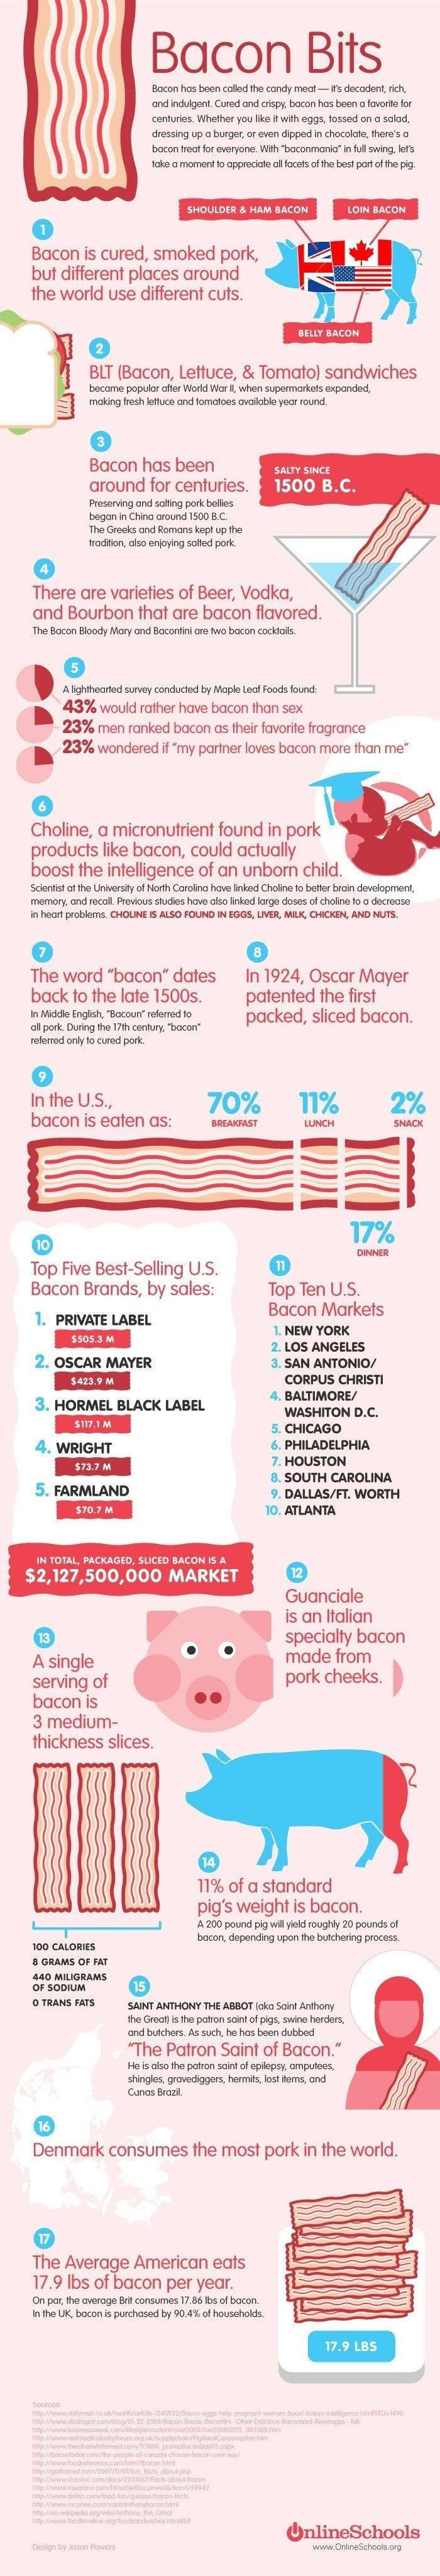 Facts About Bacon Bits #infographic